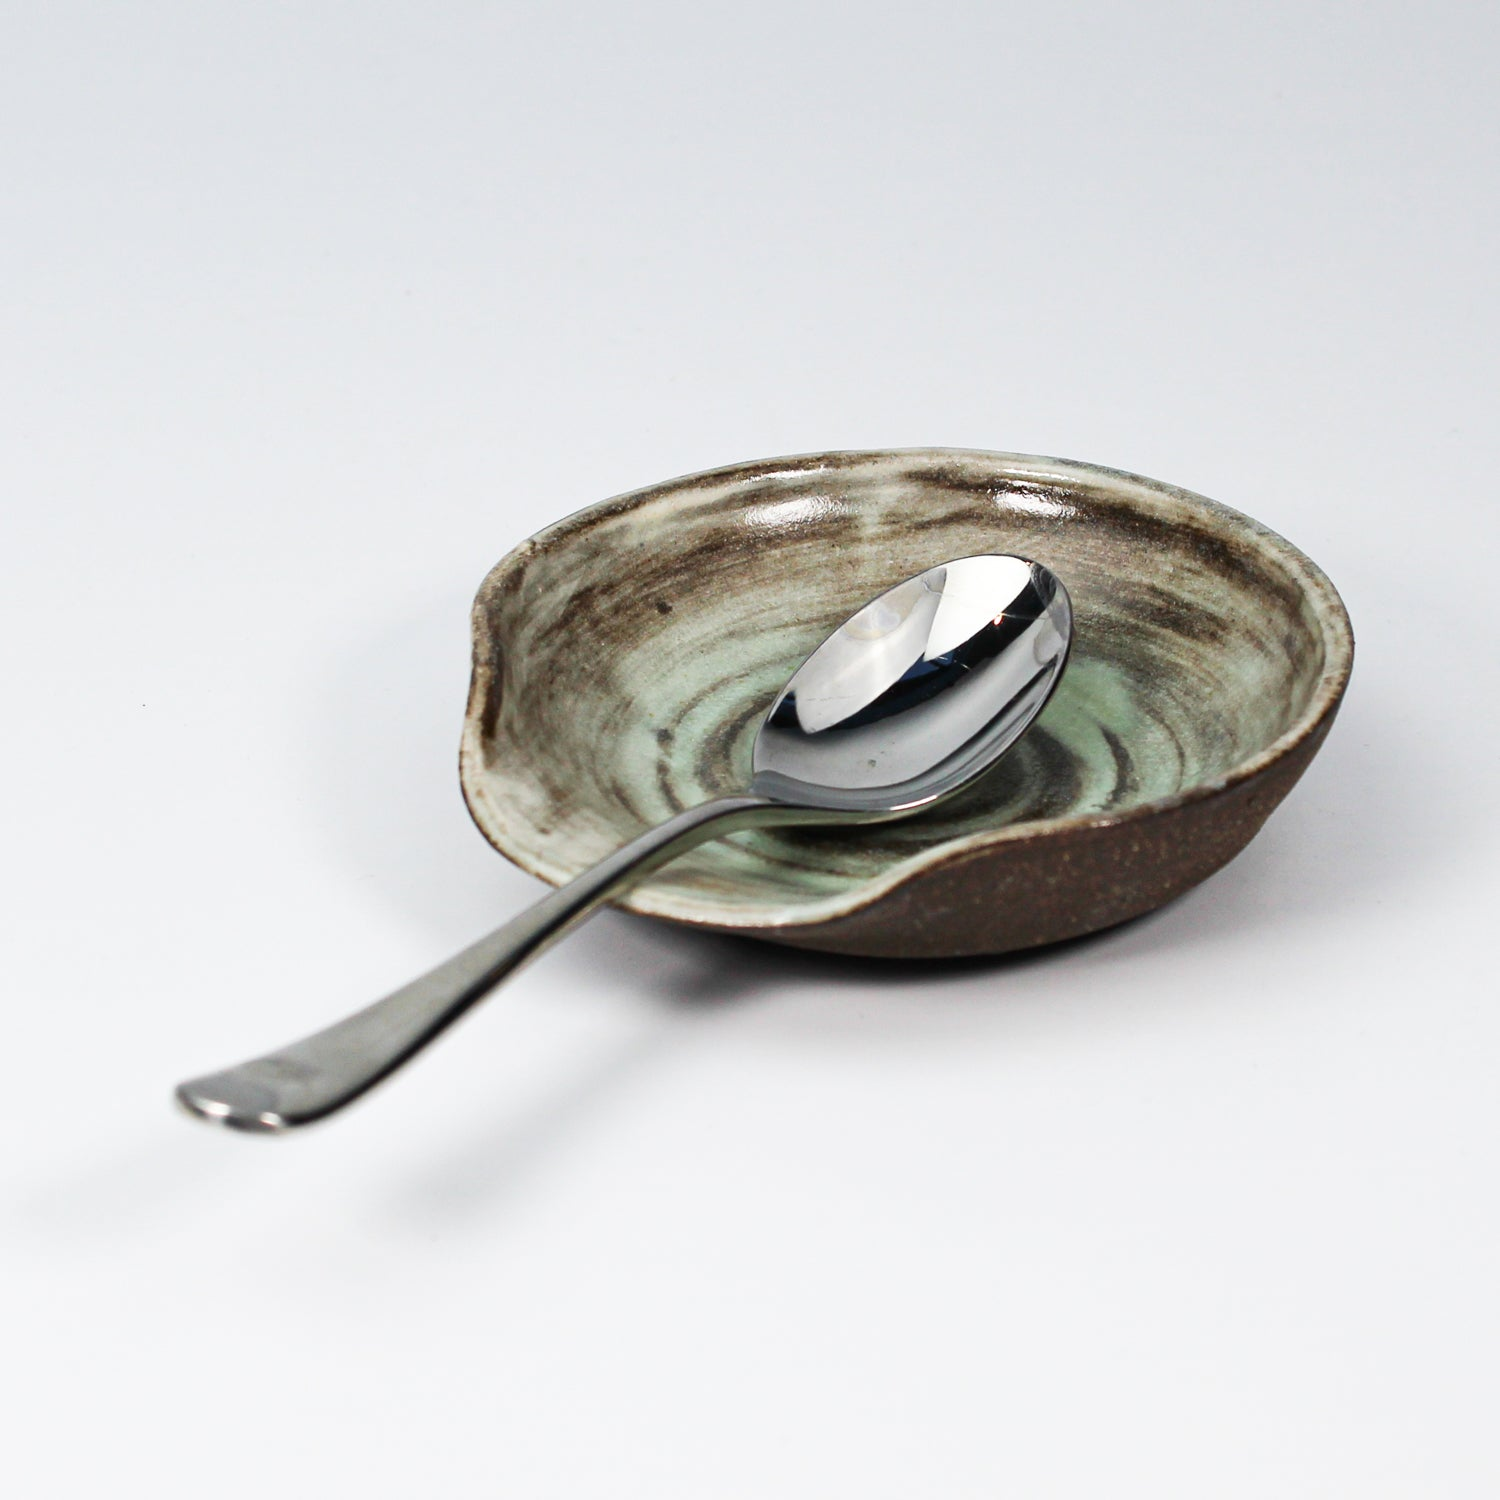 Ceramic spoon rest in brown and sage green with a teaspoon resting on it